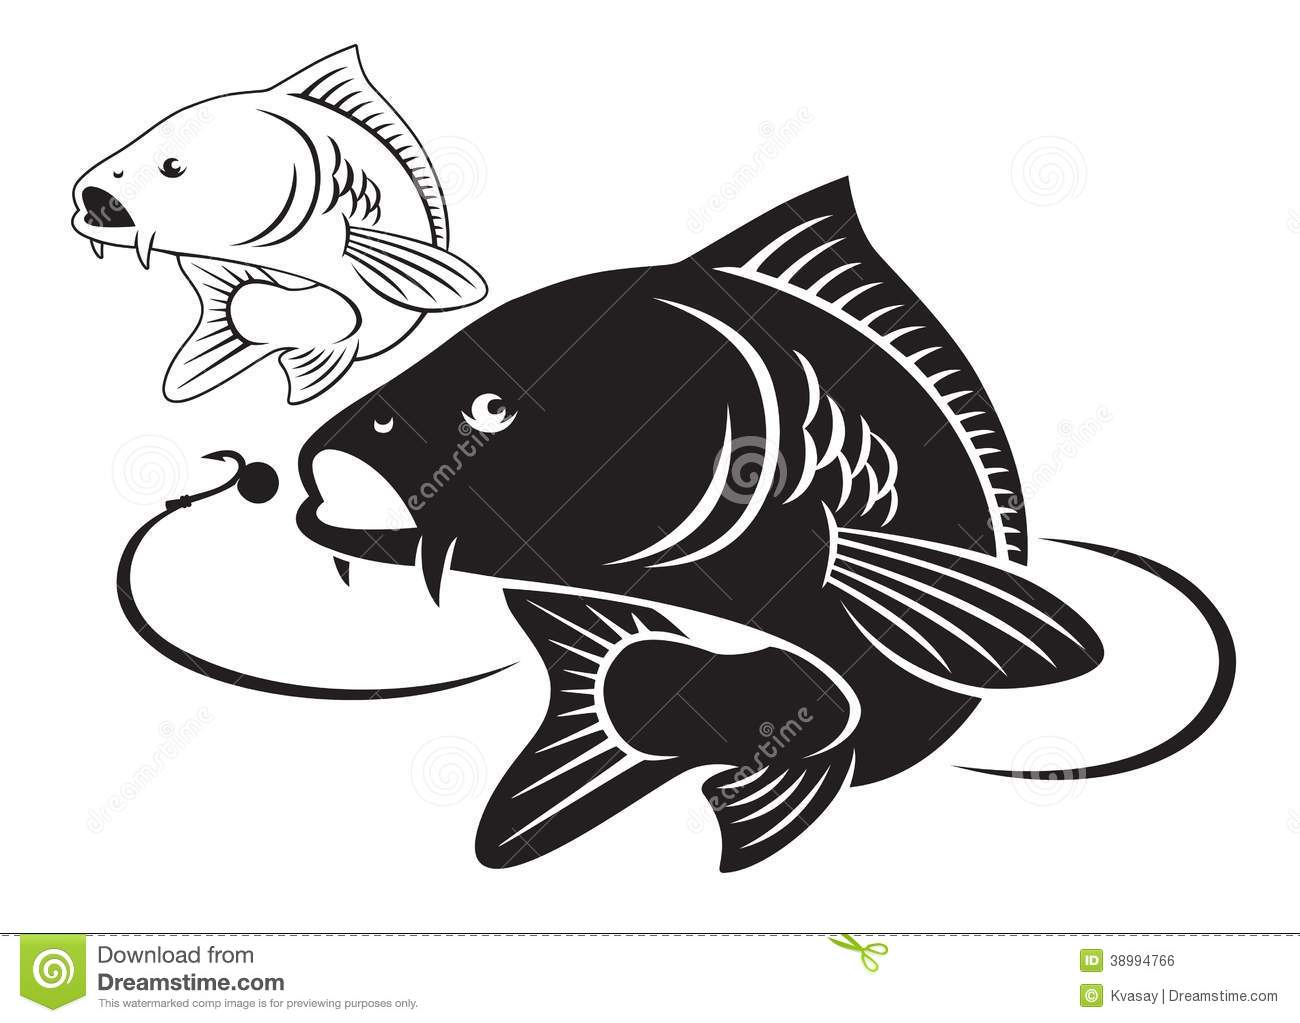 Carp clipart #18, Download drawings